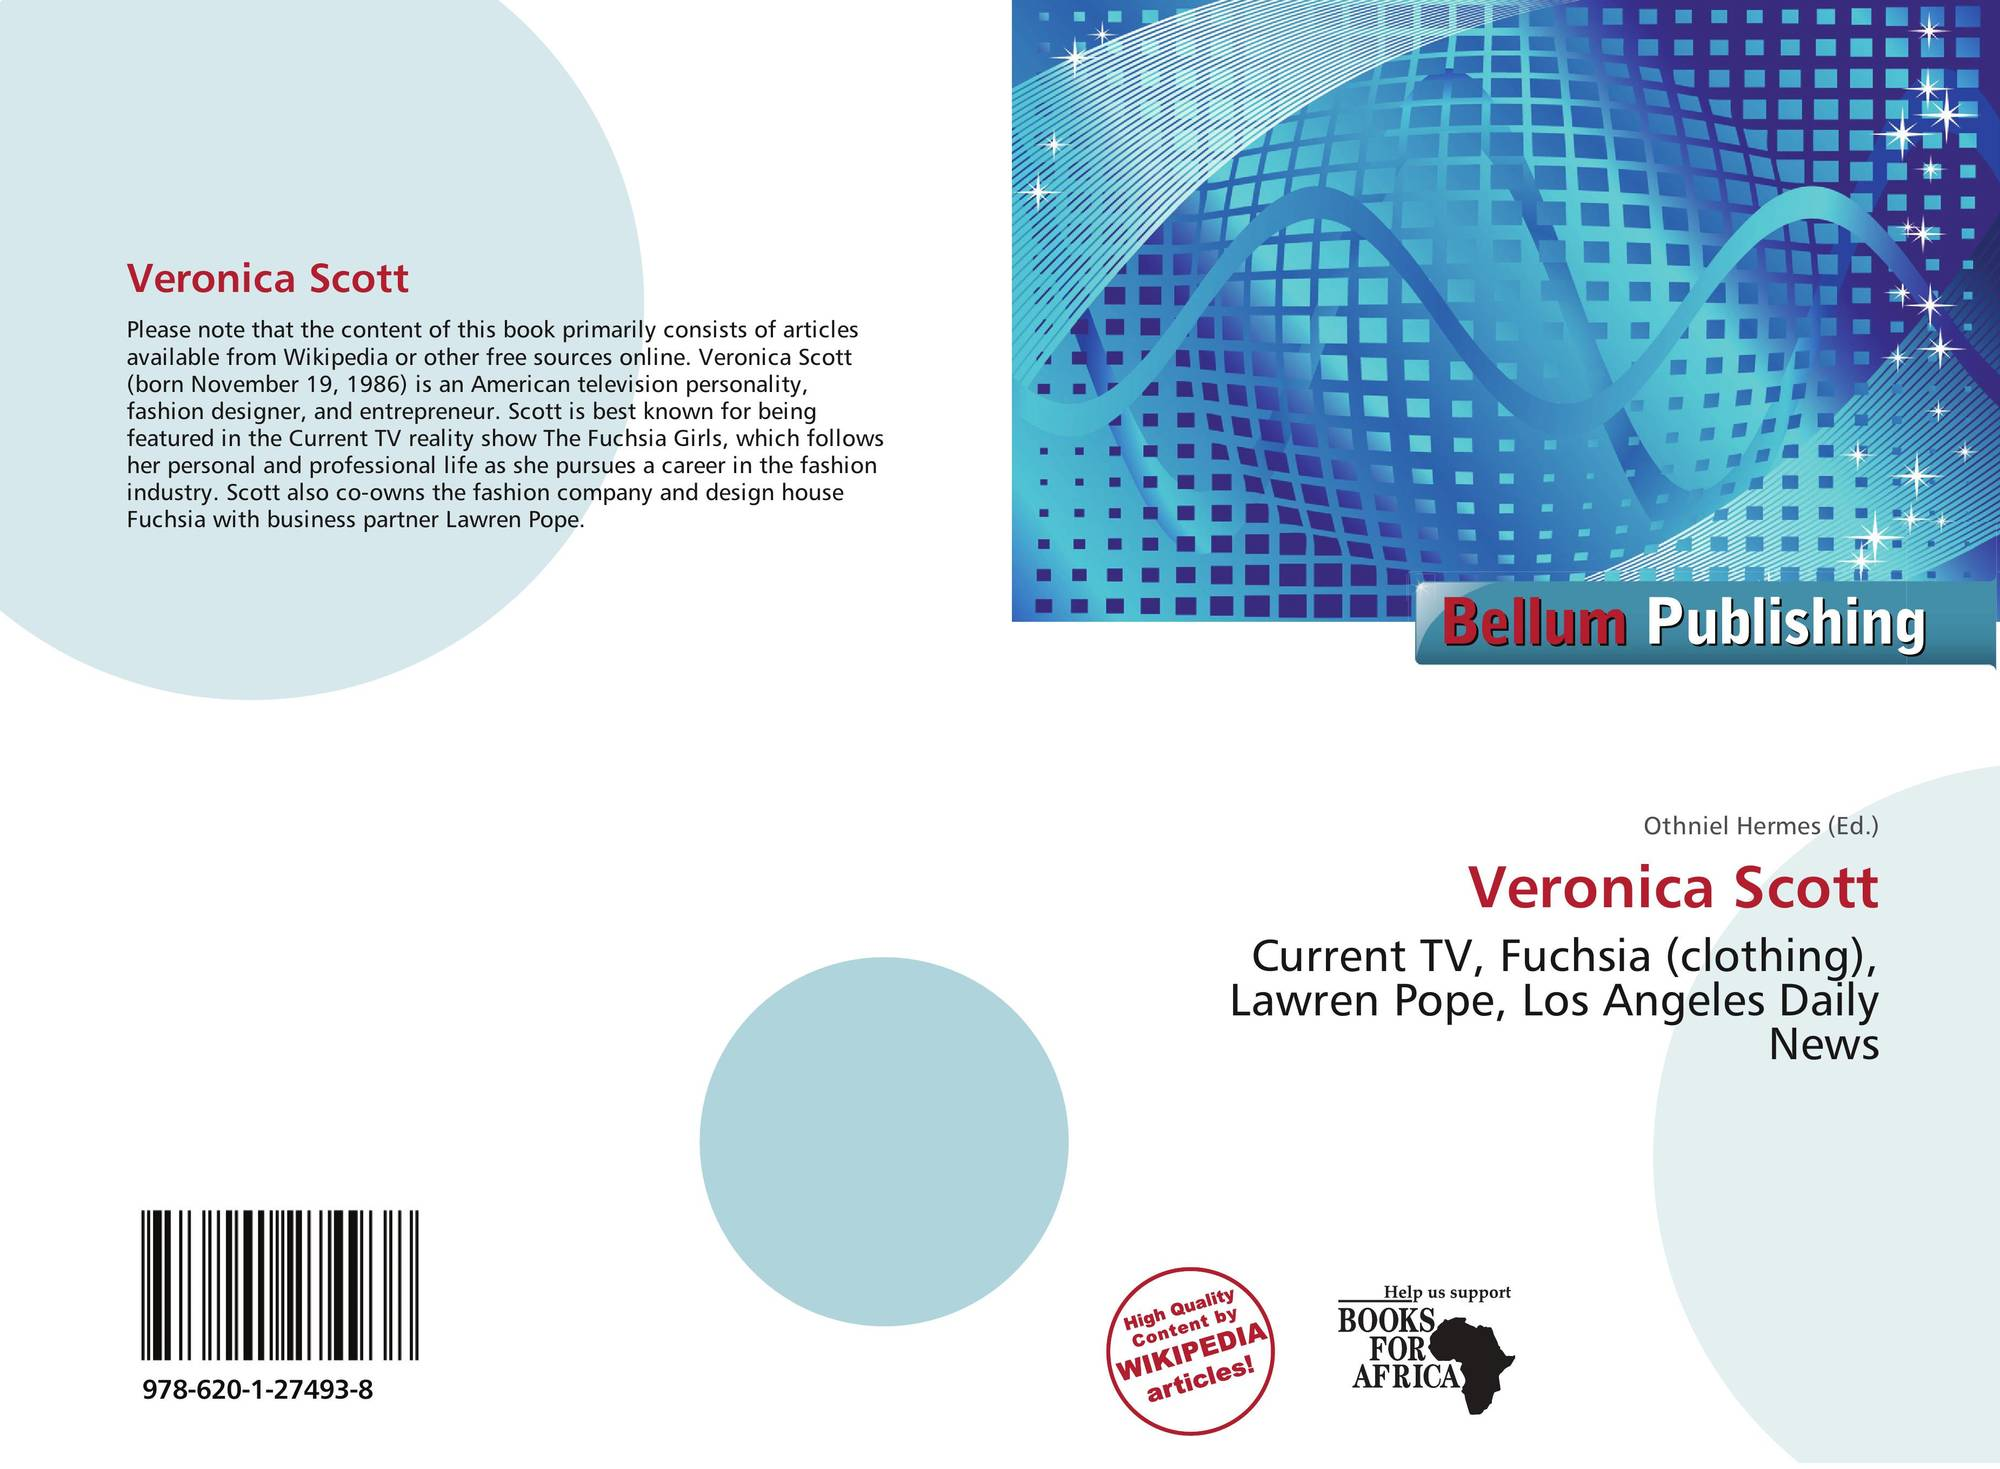 Communication on this topic: Stephen McGann (born 1963), veronica-castang/